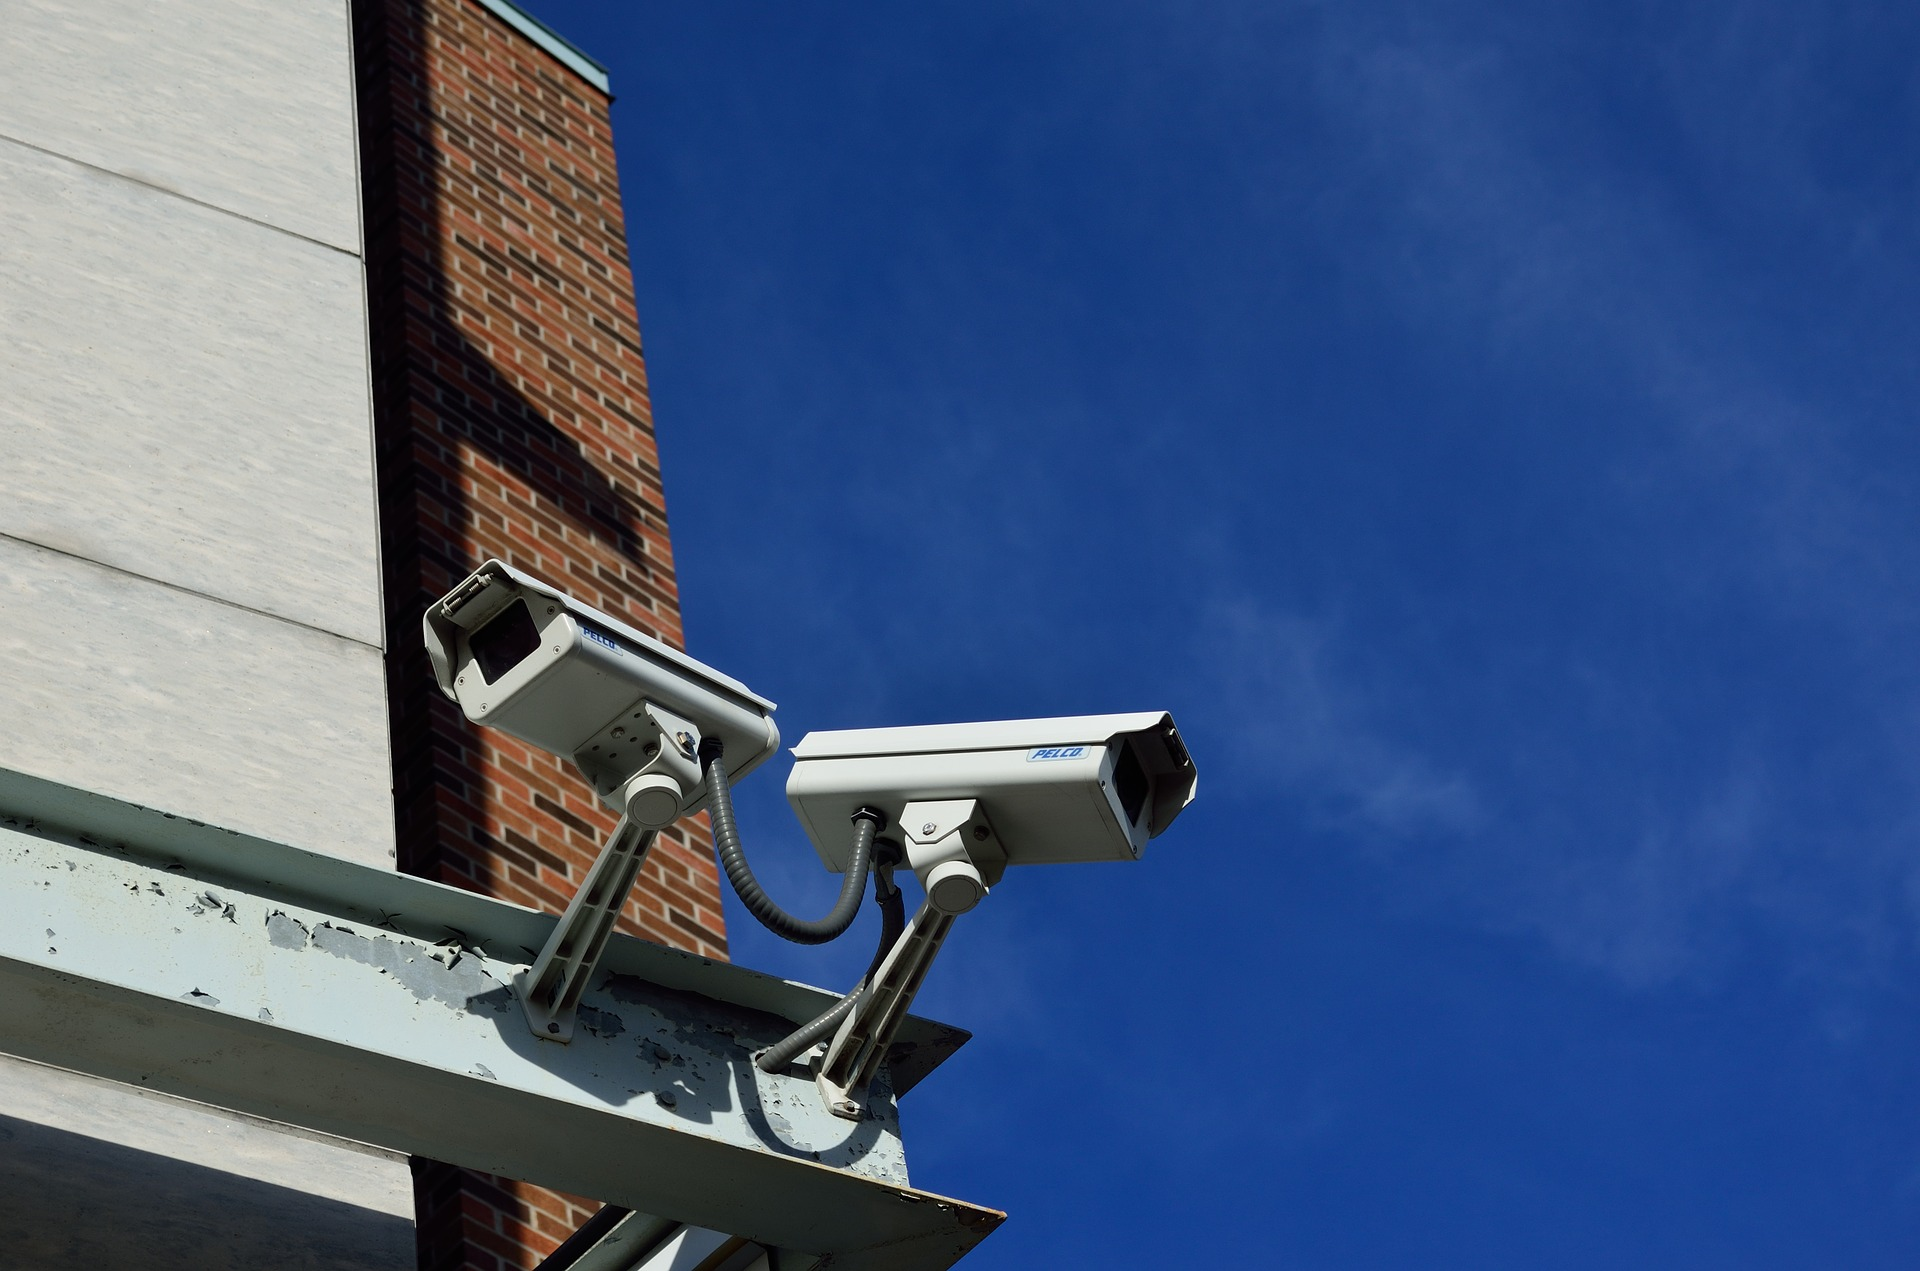 Property Security: Where Should You Place Security Cameras?